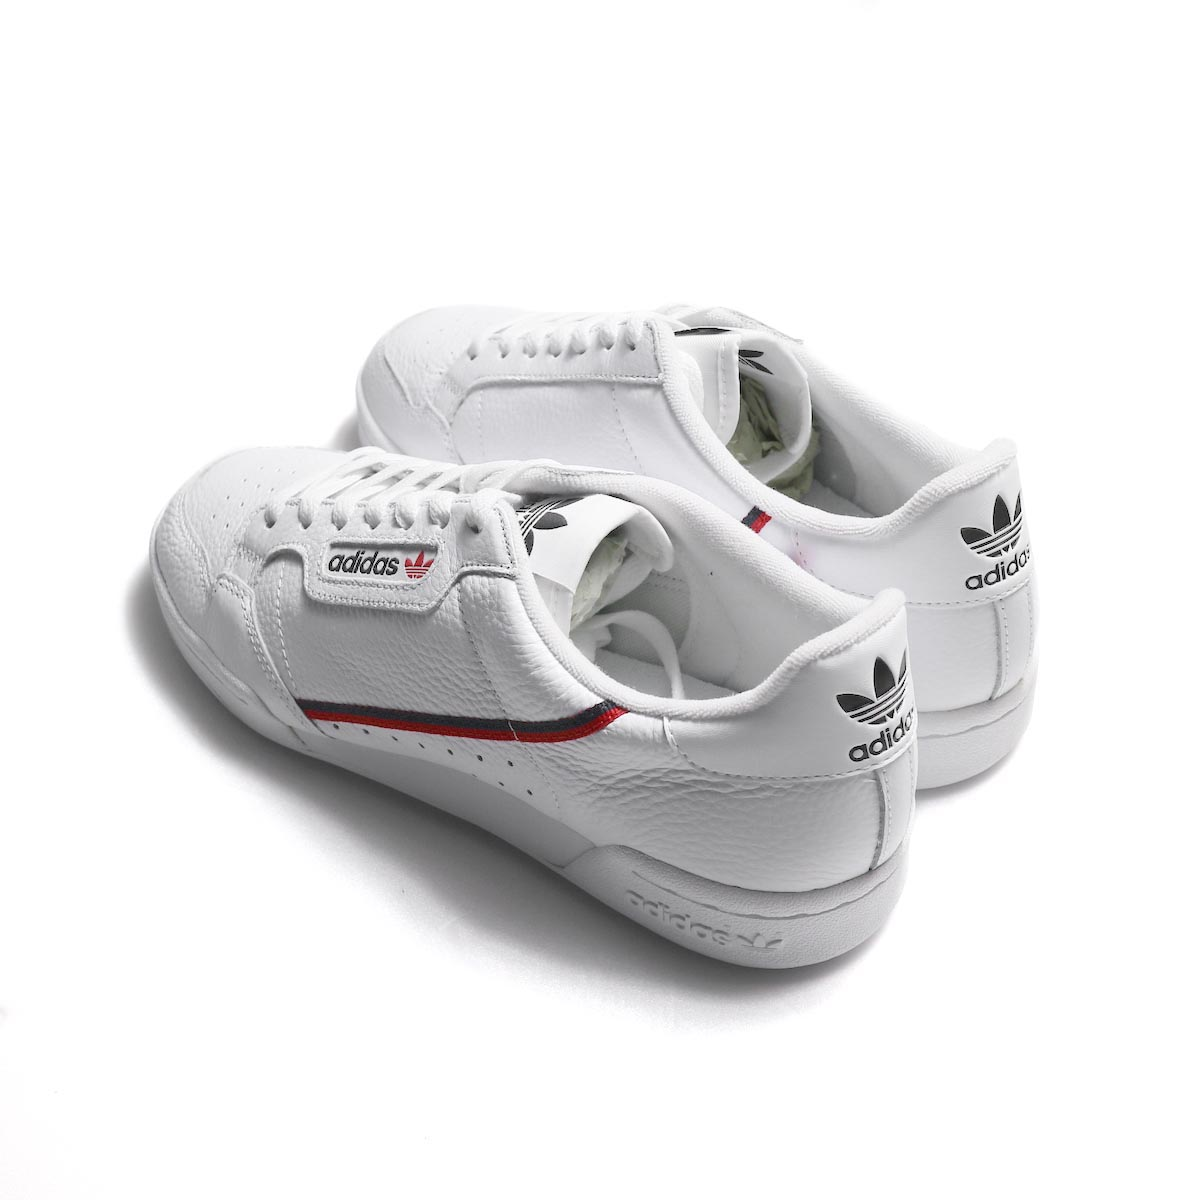 adidas originals / CONTINENTAL80 (G27706) -White 後サイド